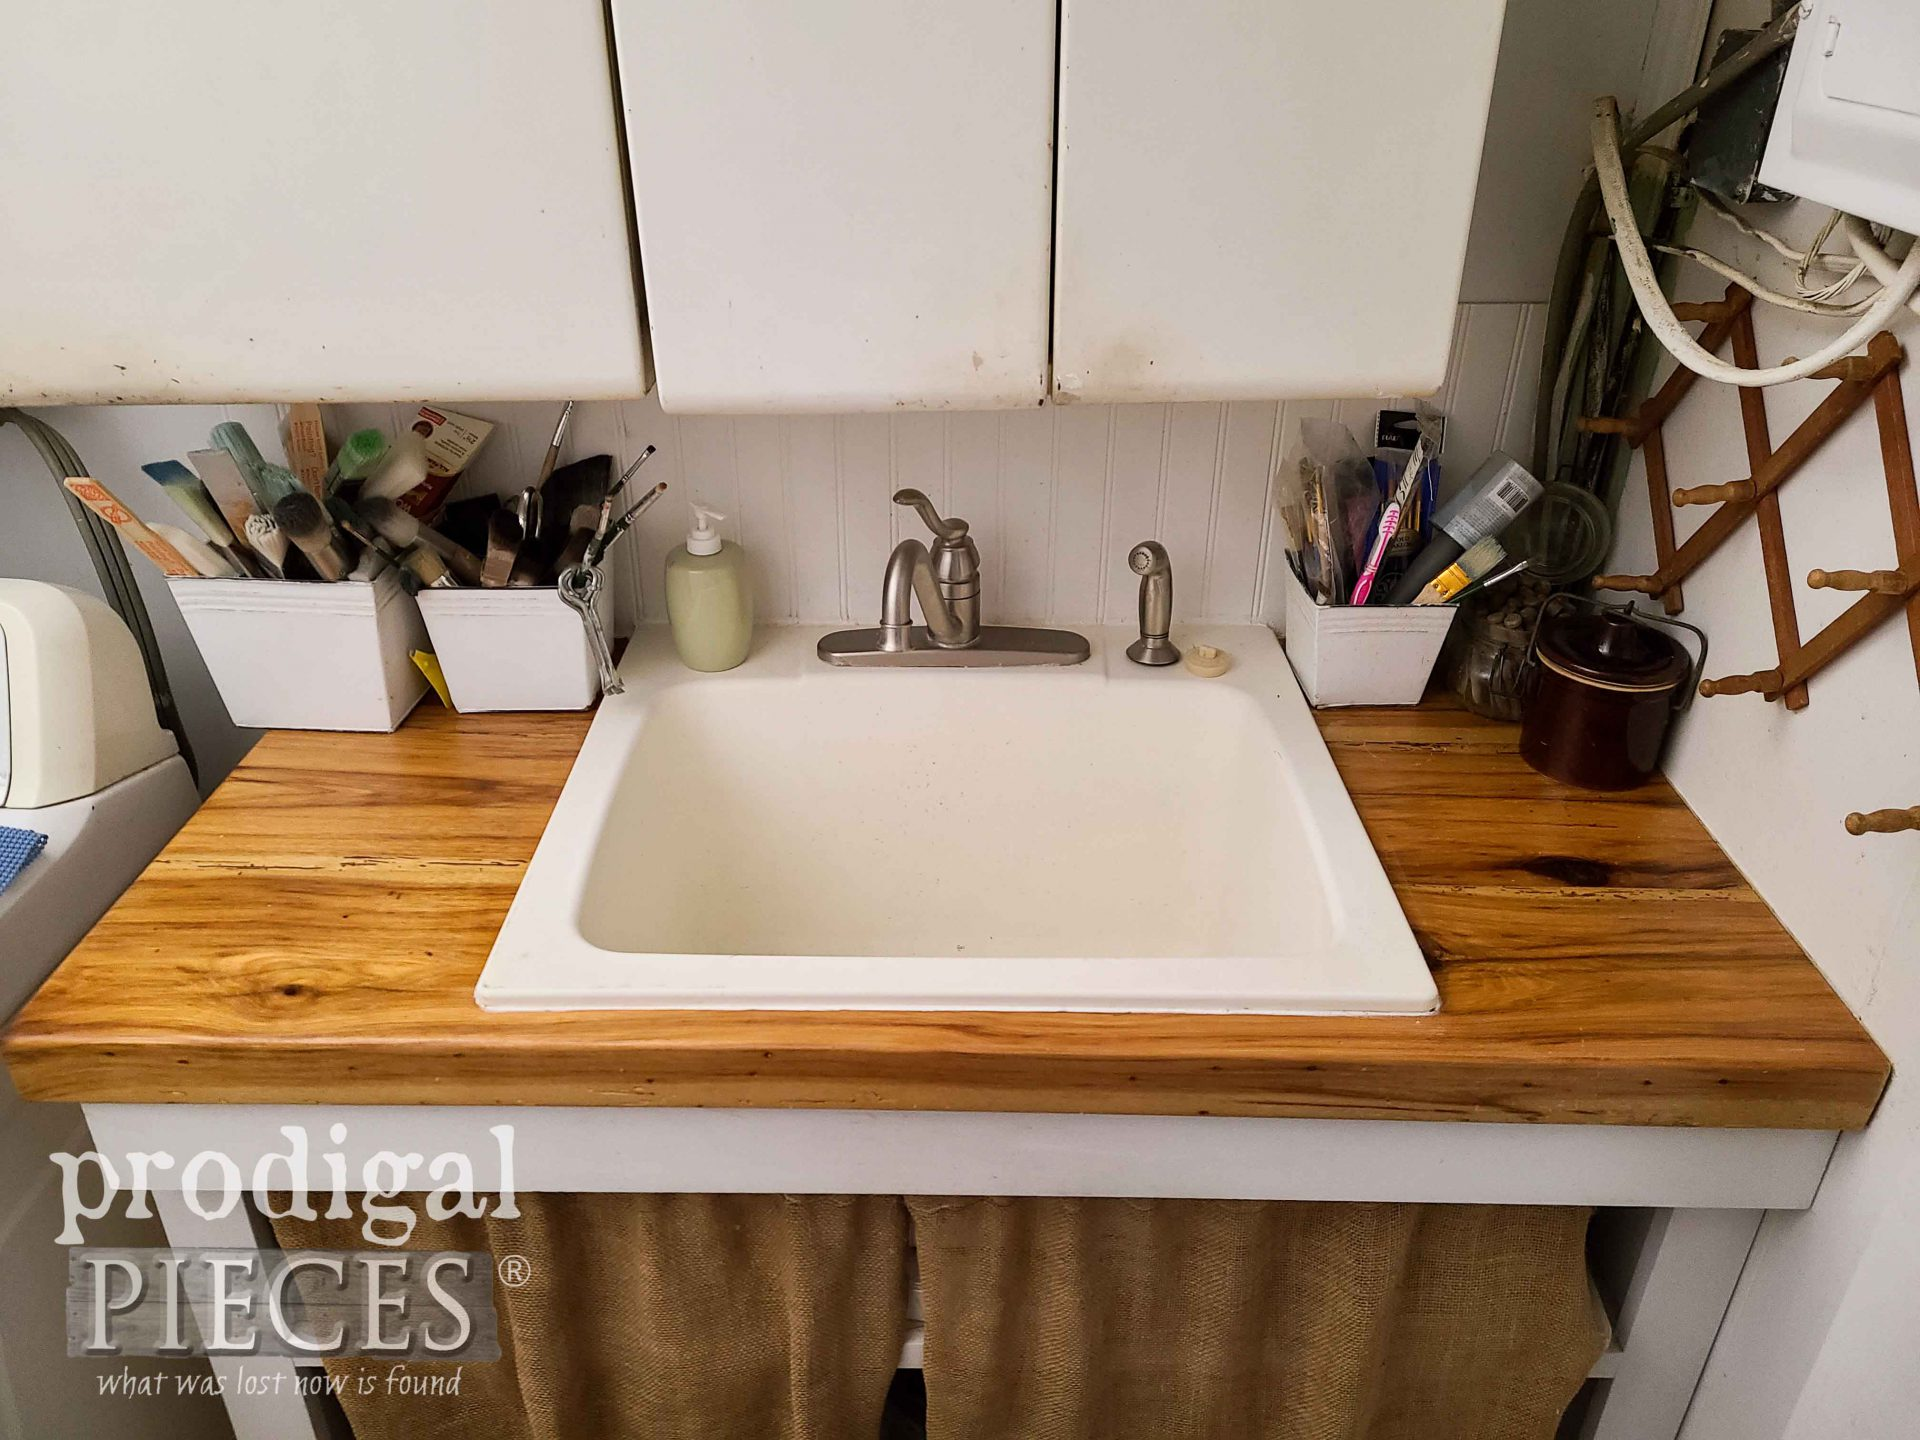 DIY Farmhouse Laundry Sink by Prodigal Pieces | prodigalpieces.com #prodigalpieces #diy #home #laundry